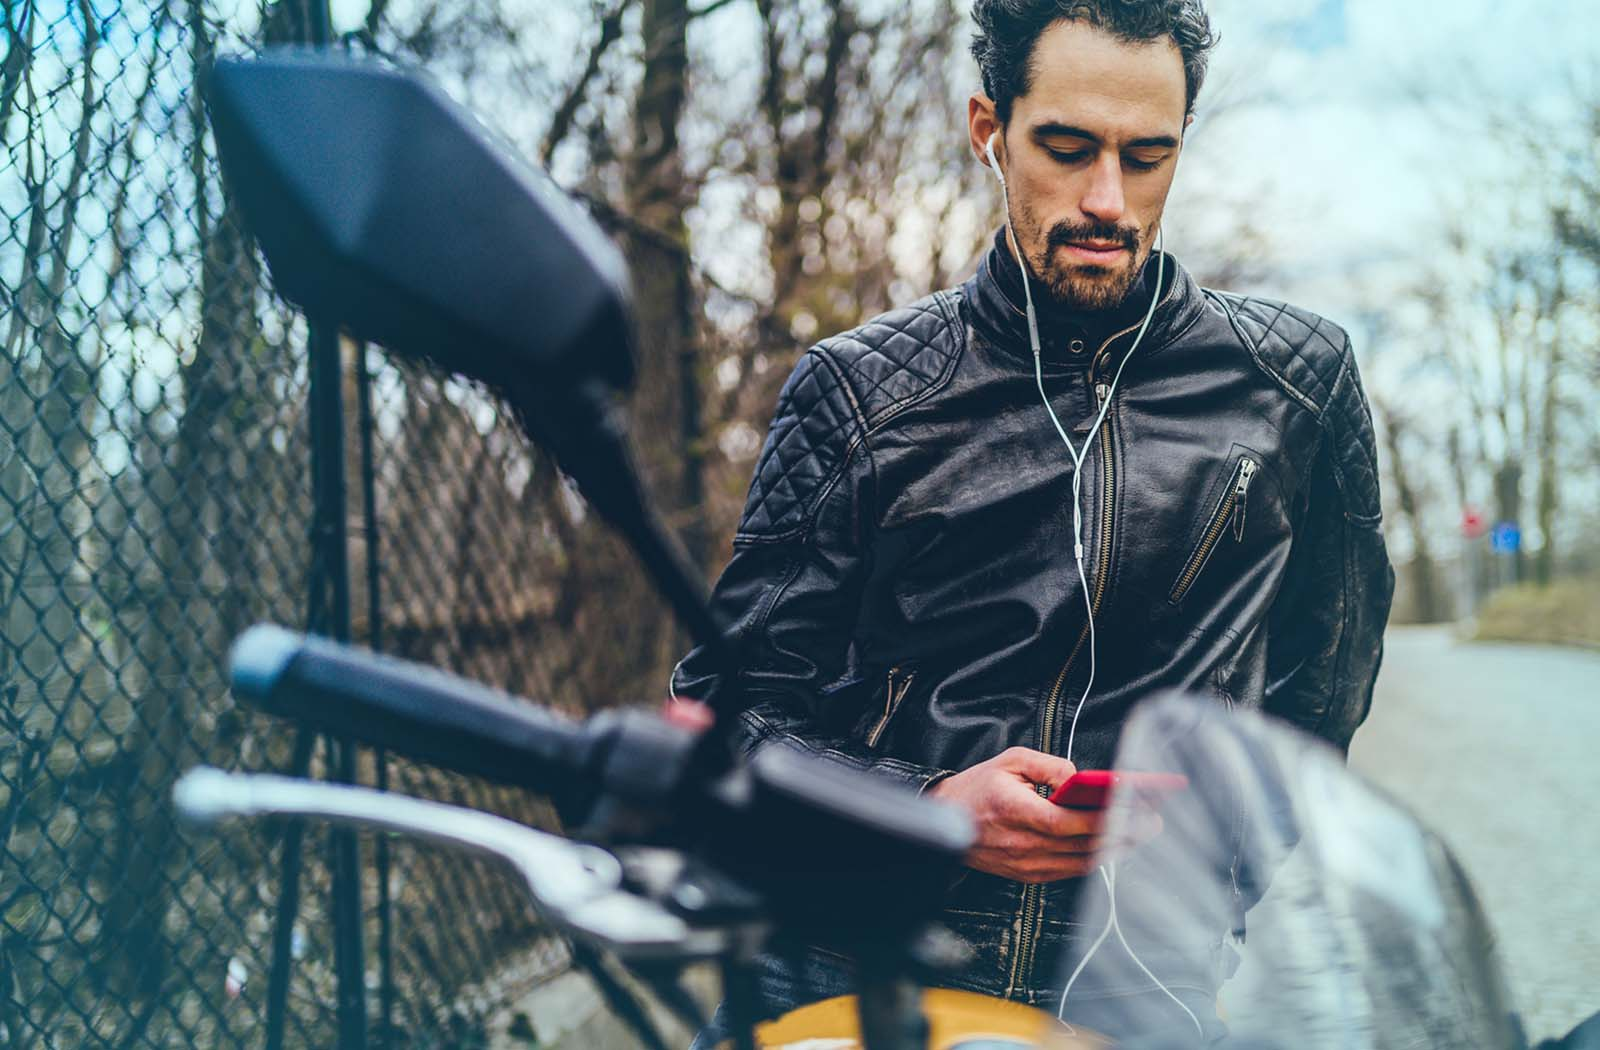 The Best Earbuds For Motorcycle